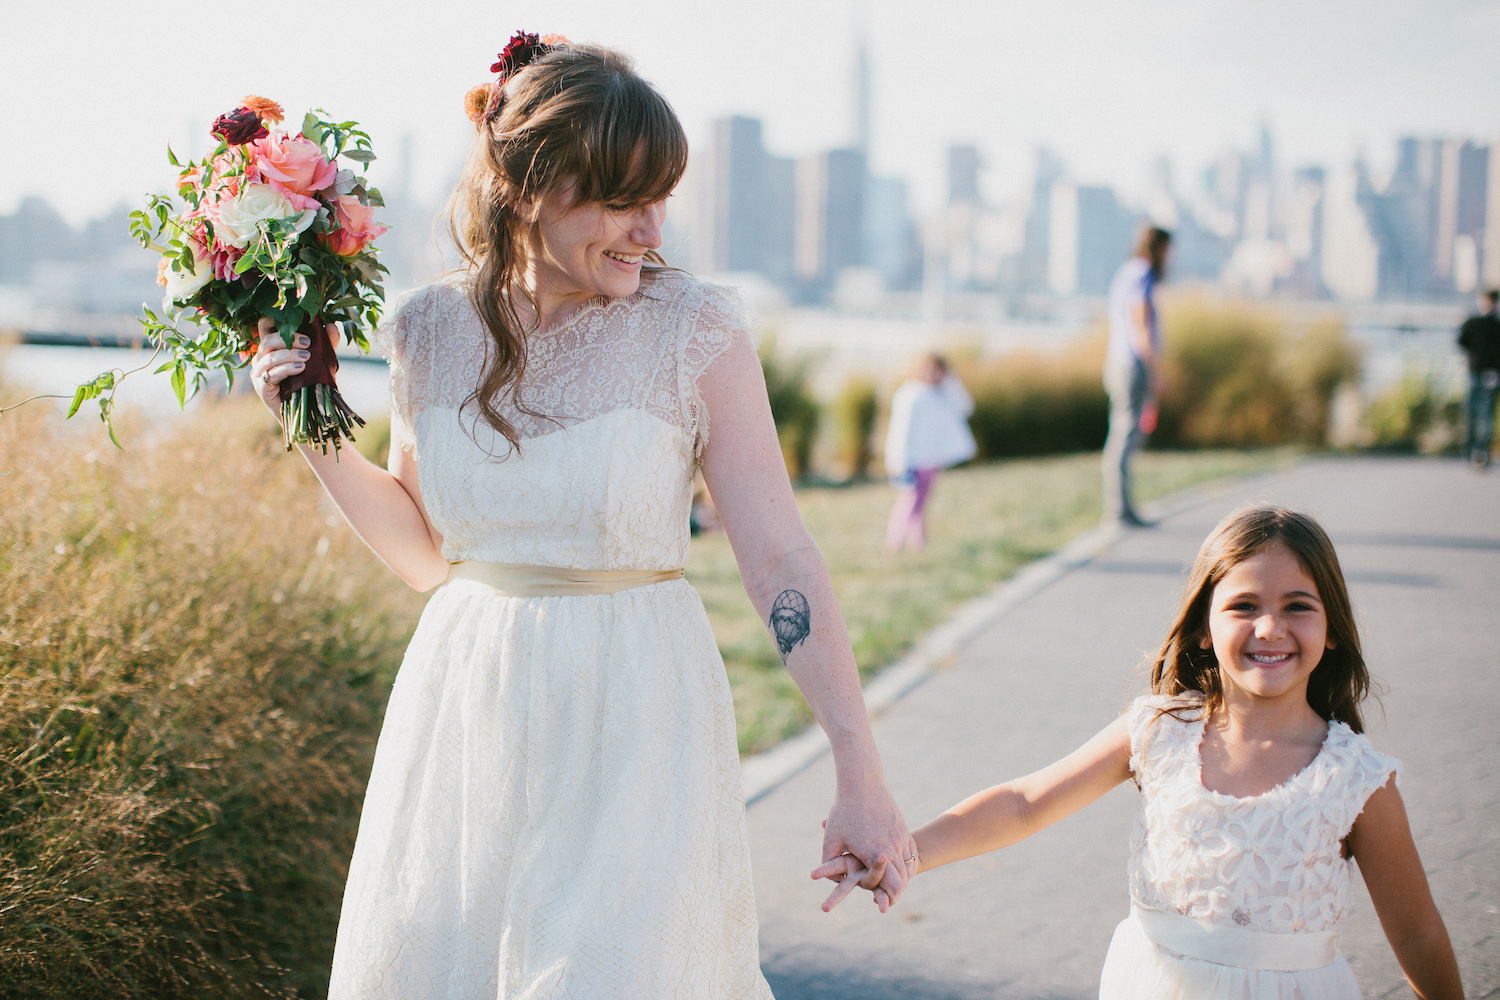 Full Aperture Floral & Corey Torpie Photography  - Brooklyn Wedding - 65.jpeg